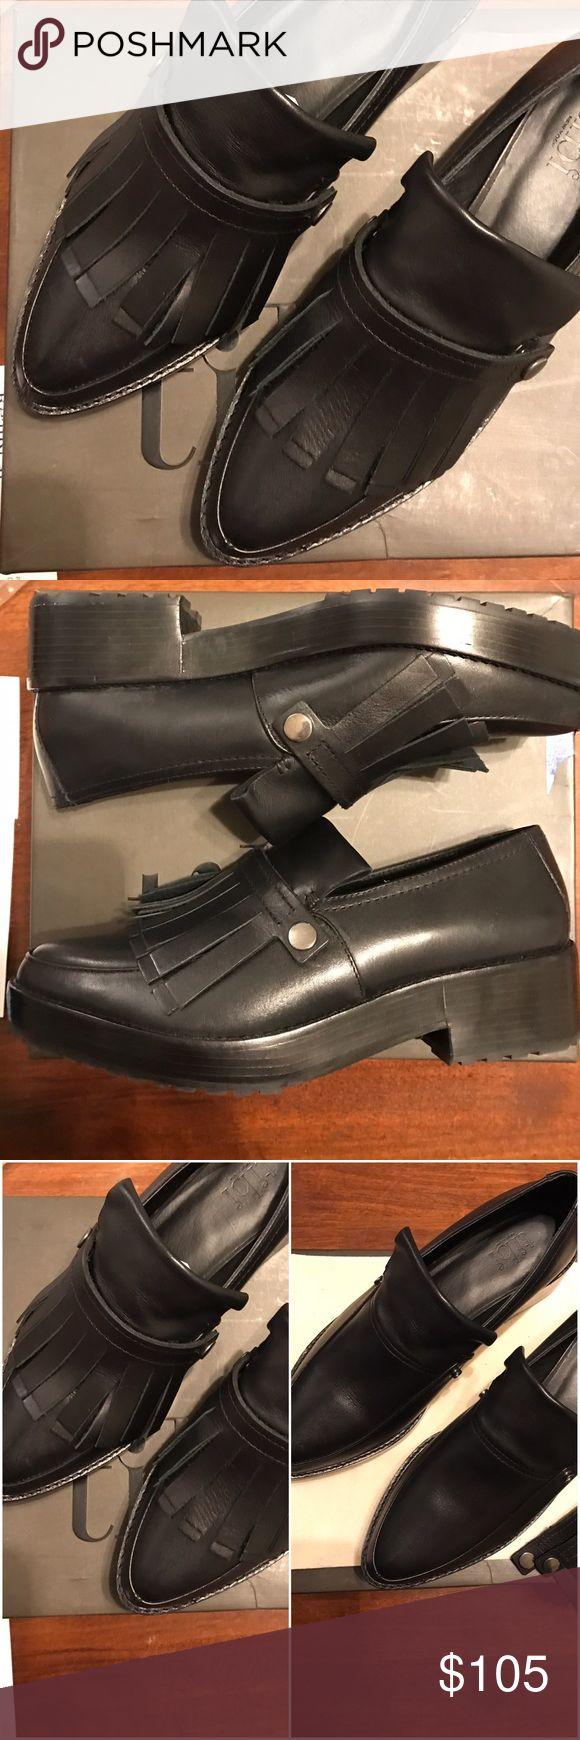 "Black tibi Chunky Loafers w. Removable Patches These tibi Chunky Loafers are awesome! They go with everything & you can still wear flats while gaining a little height. Only worn a couple of times. Heel: approx 1.75""-in. Platform: 1""-in. In box. Tibi Shoes Flats & Loafers"